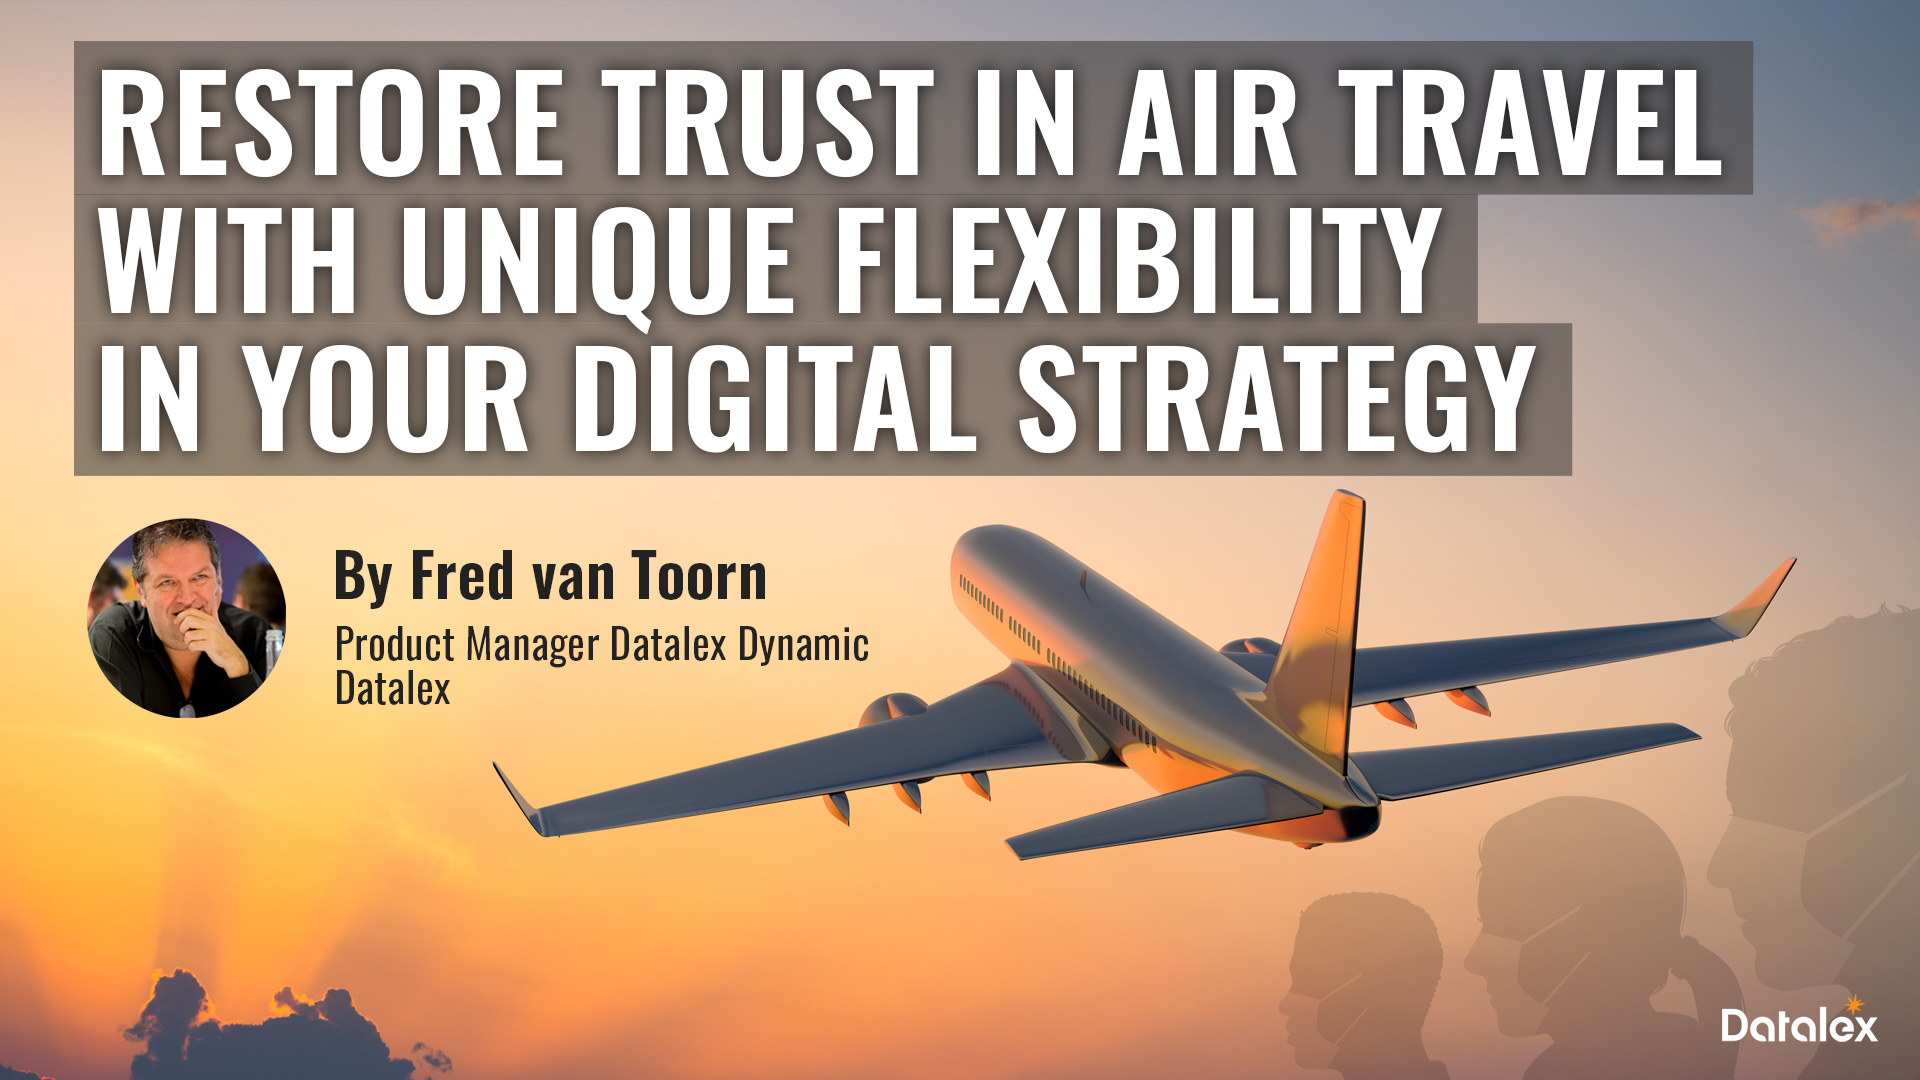 Restore trust in air travel with unique flexibility in your digital strategy